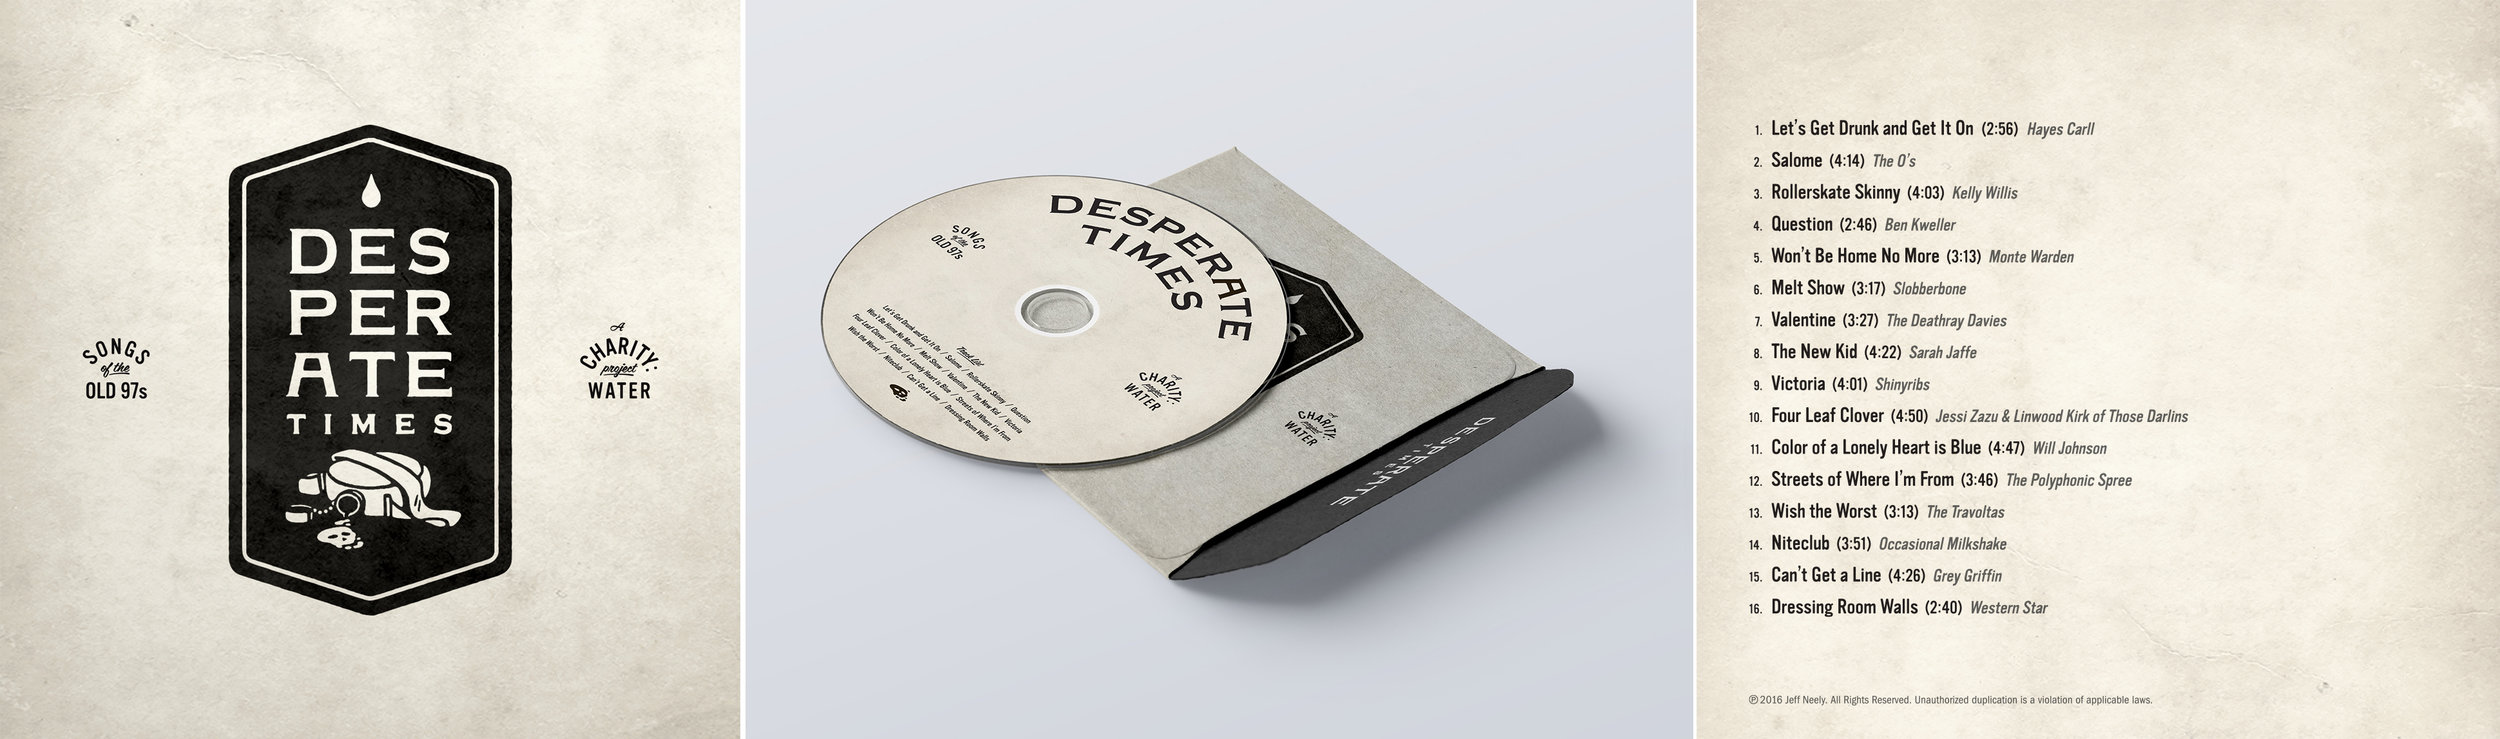 DespTimes CD Mockup.jpg